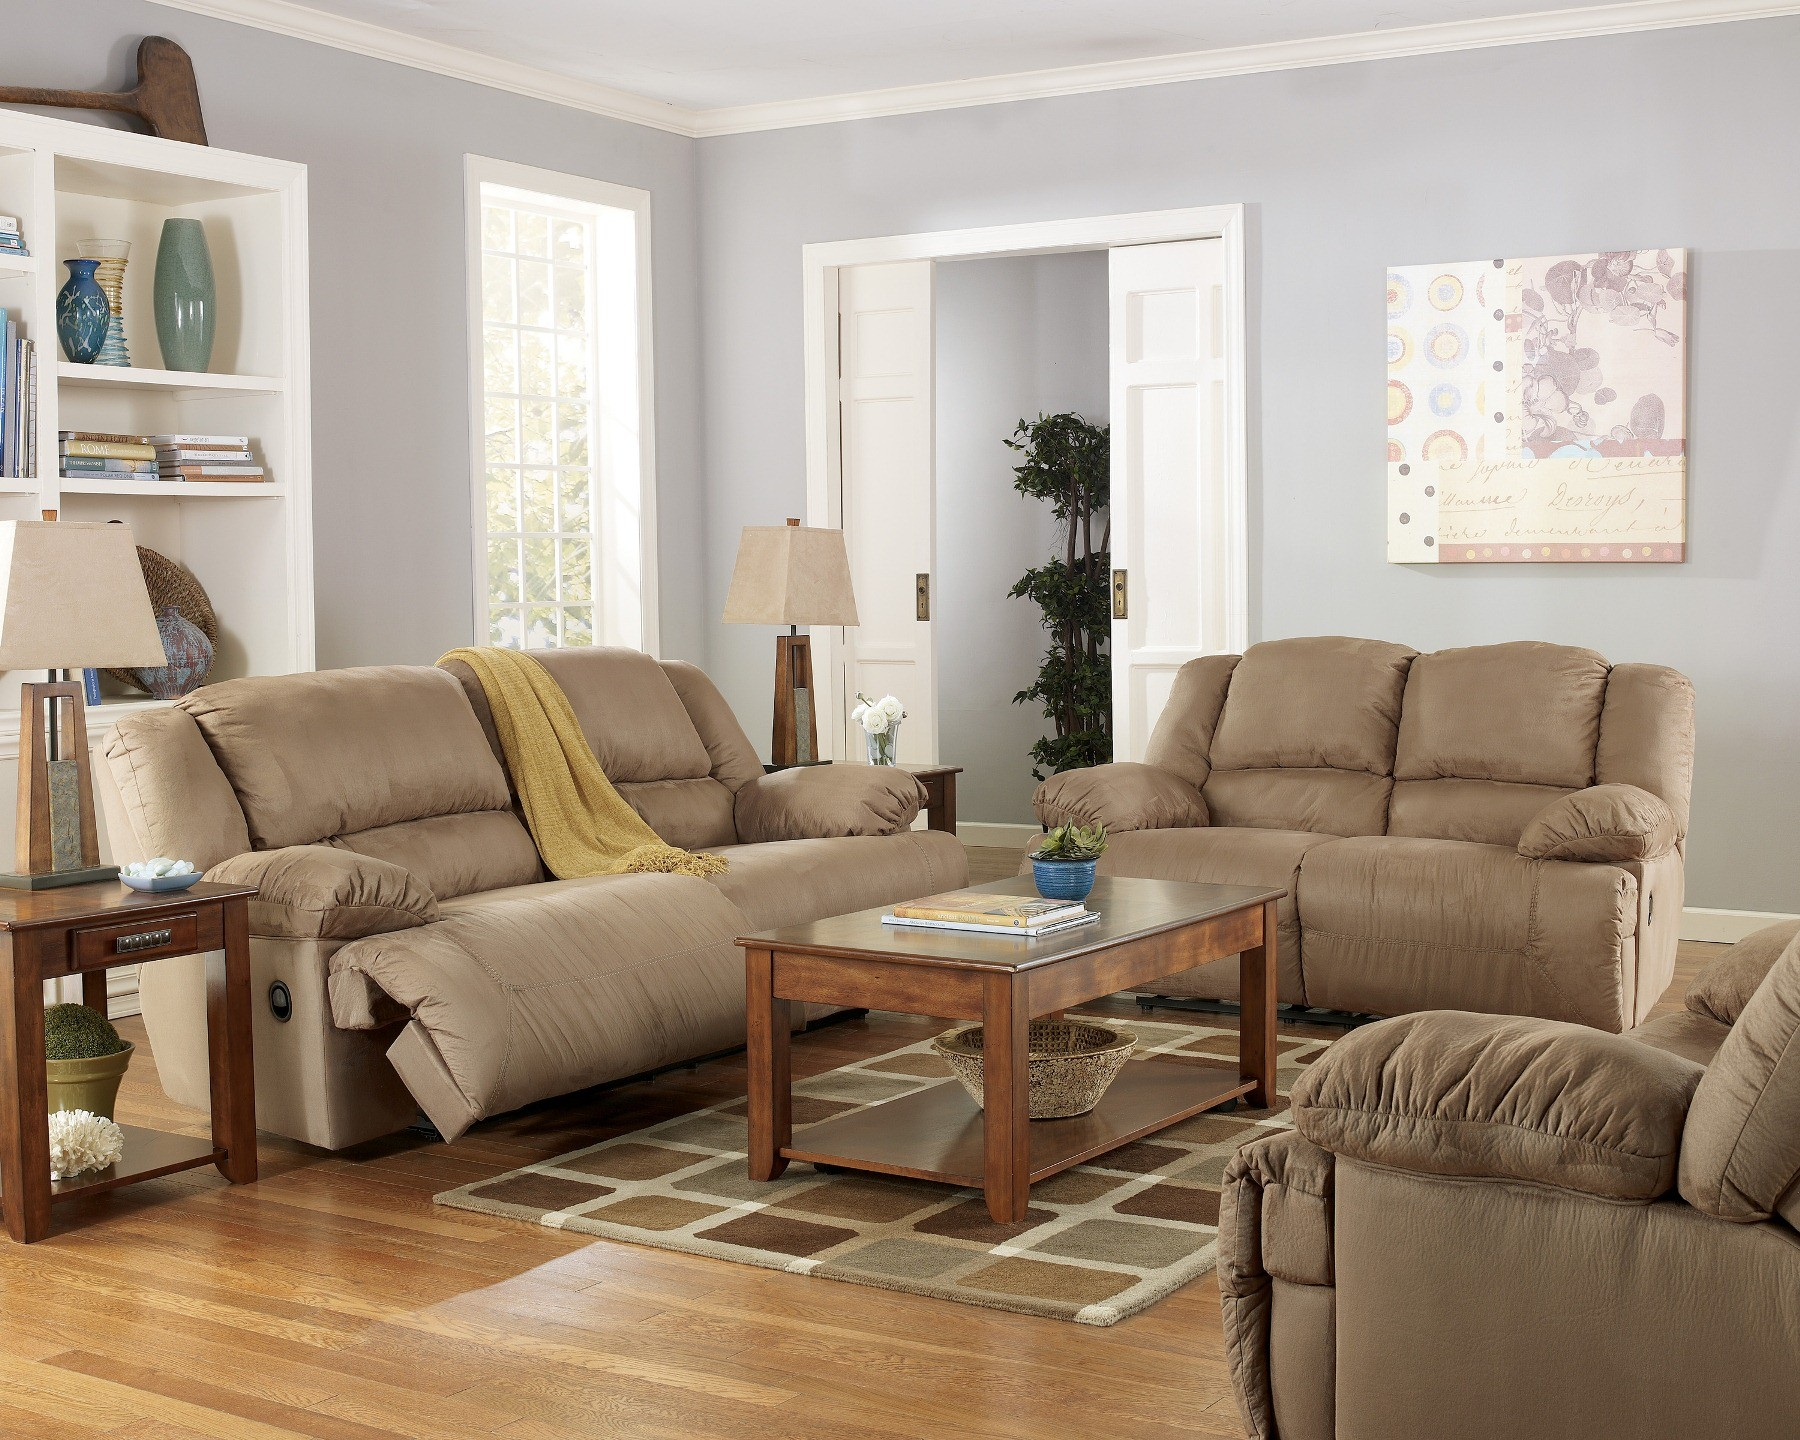 Hogan Mocha 2 Seat Reclining Sofa From Ashley 5780281 Coleman